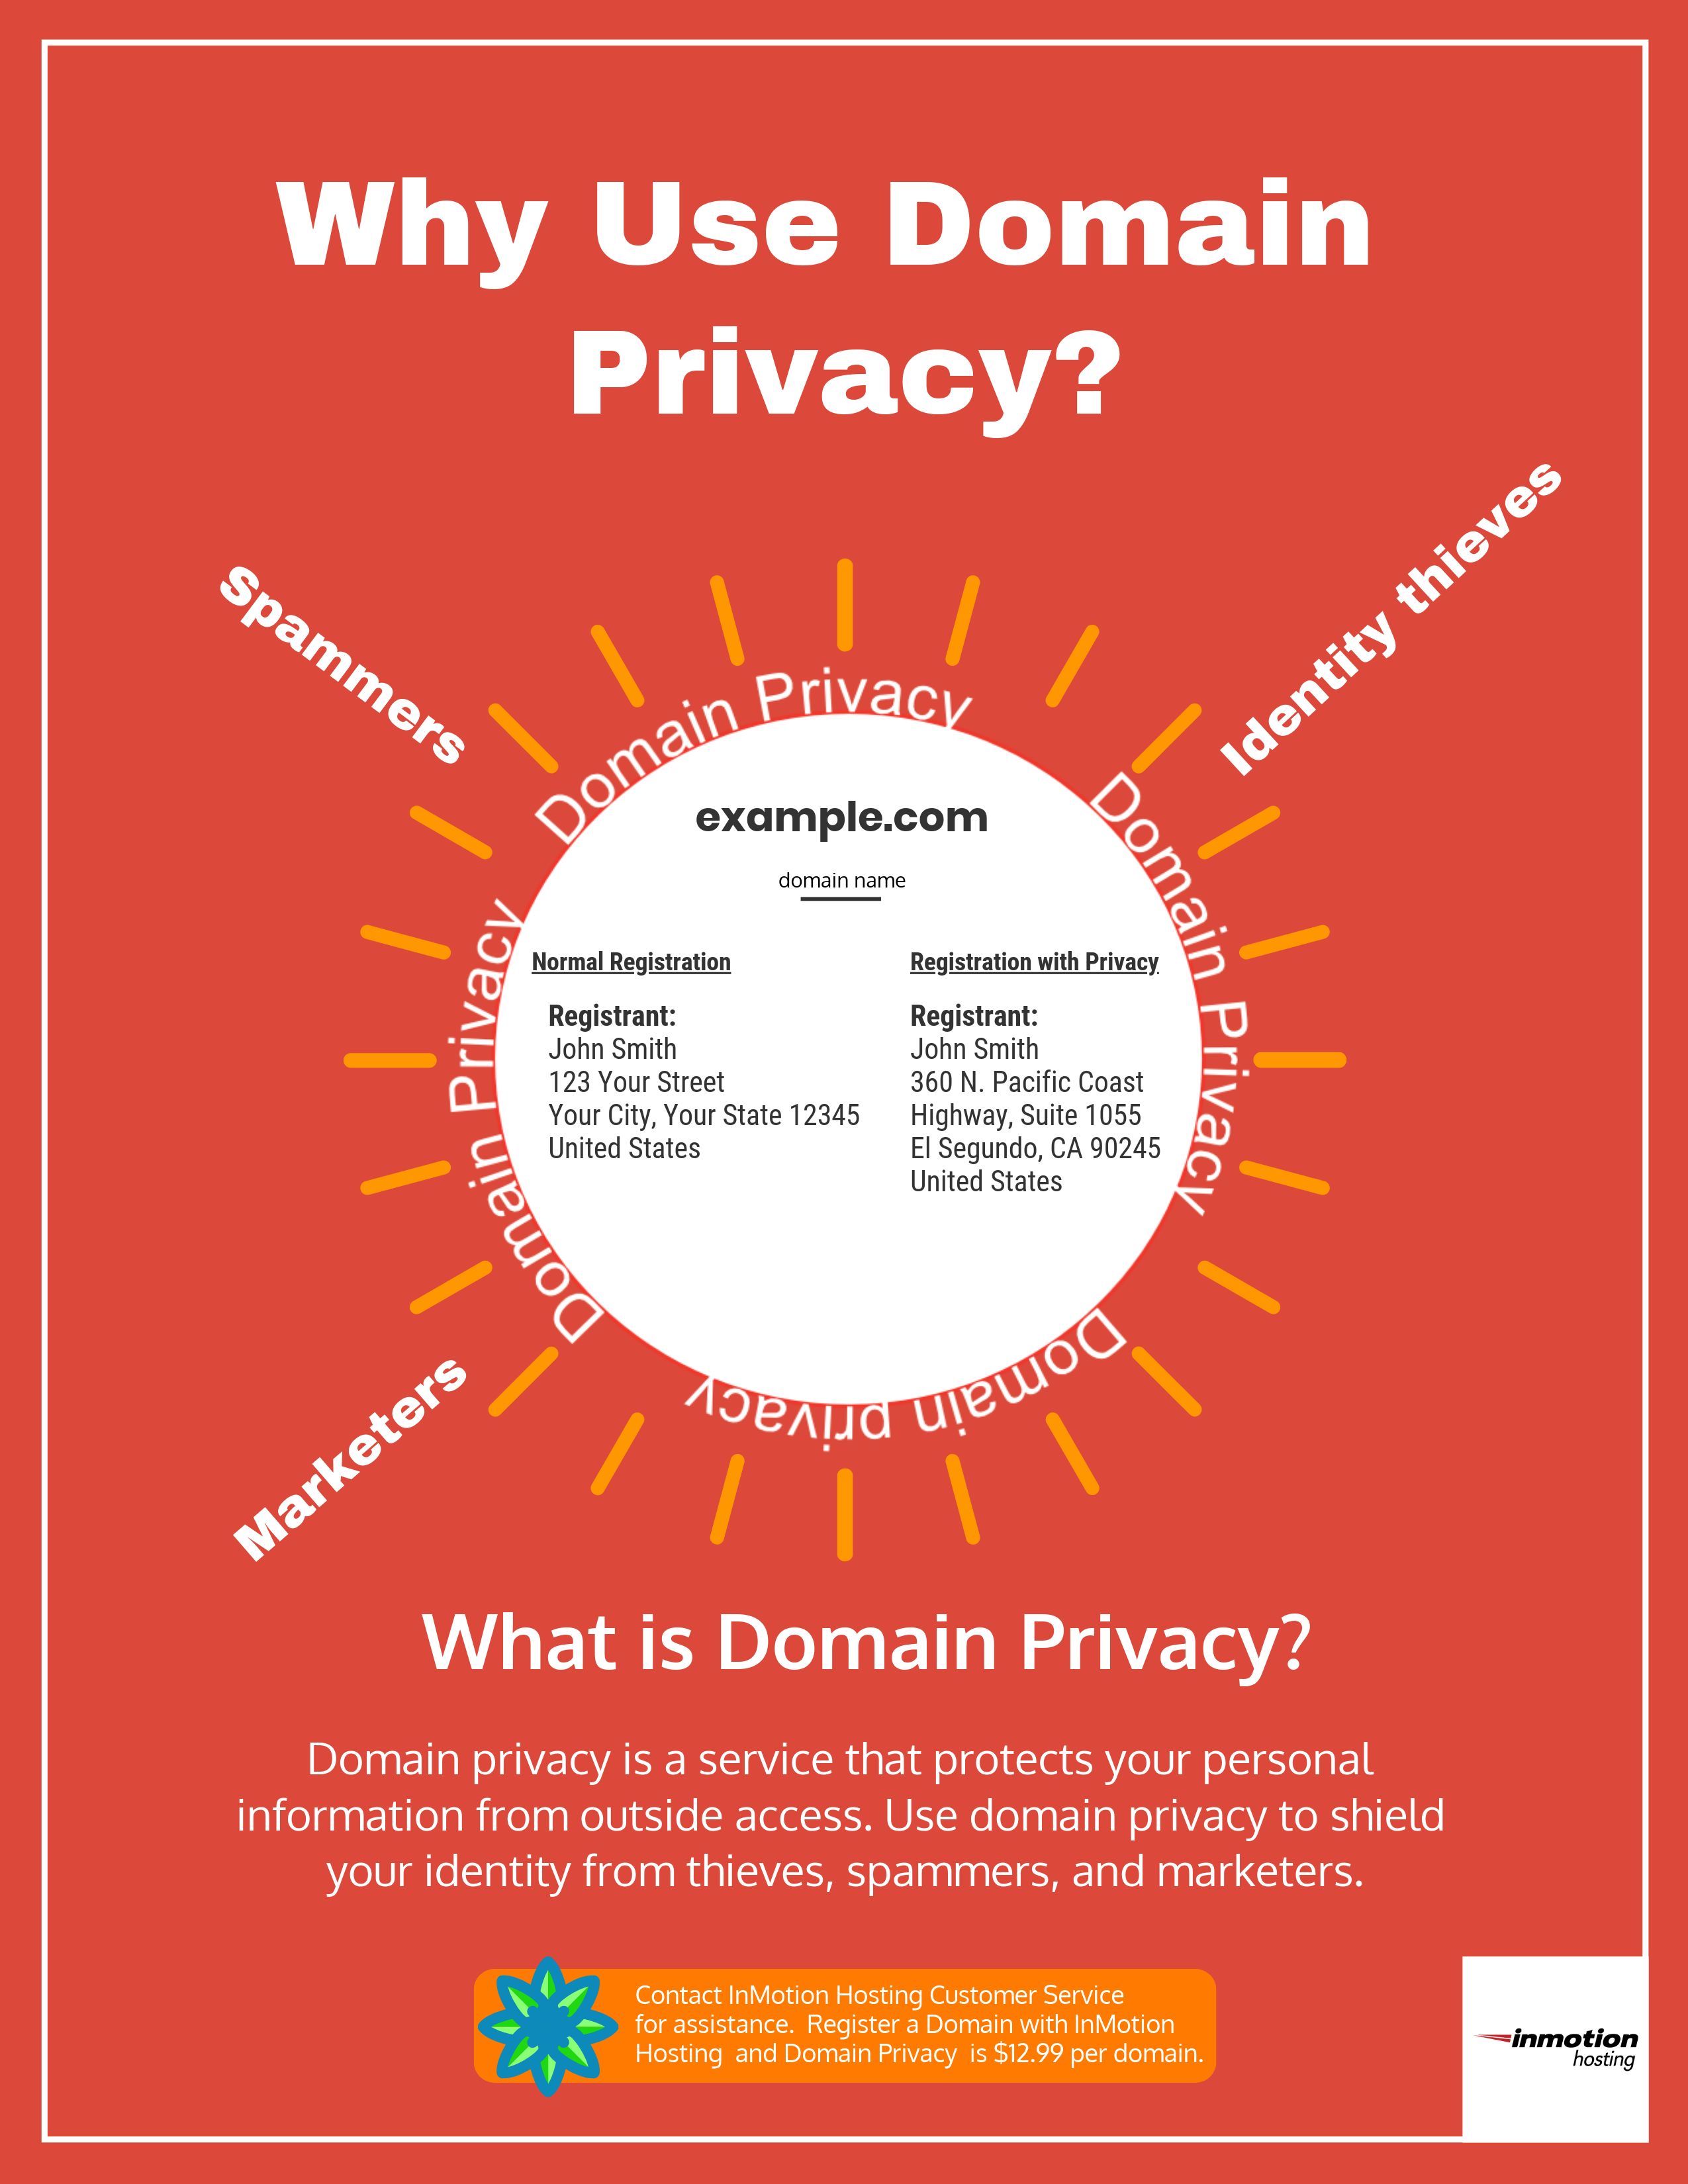 Why Use Domain Privacy?